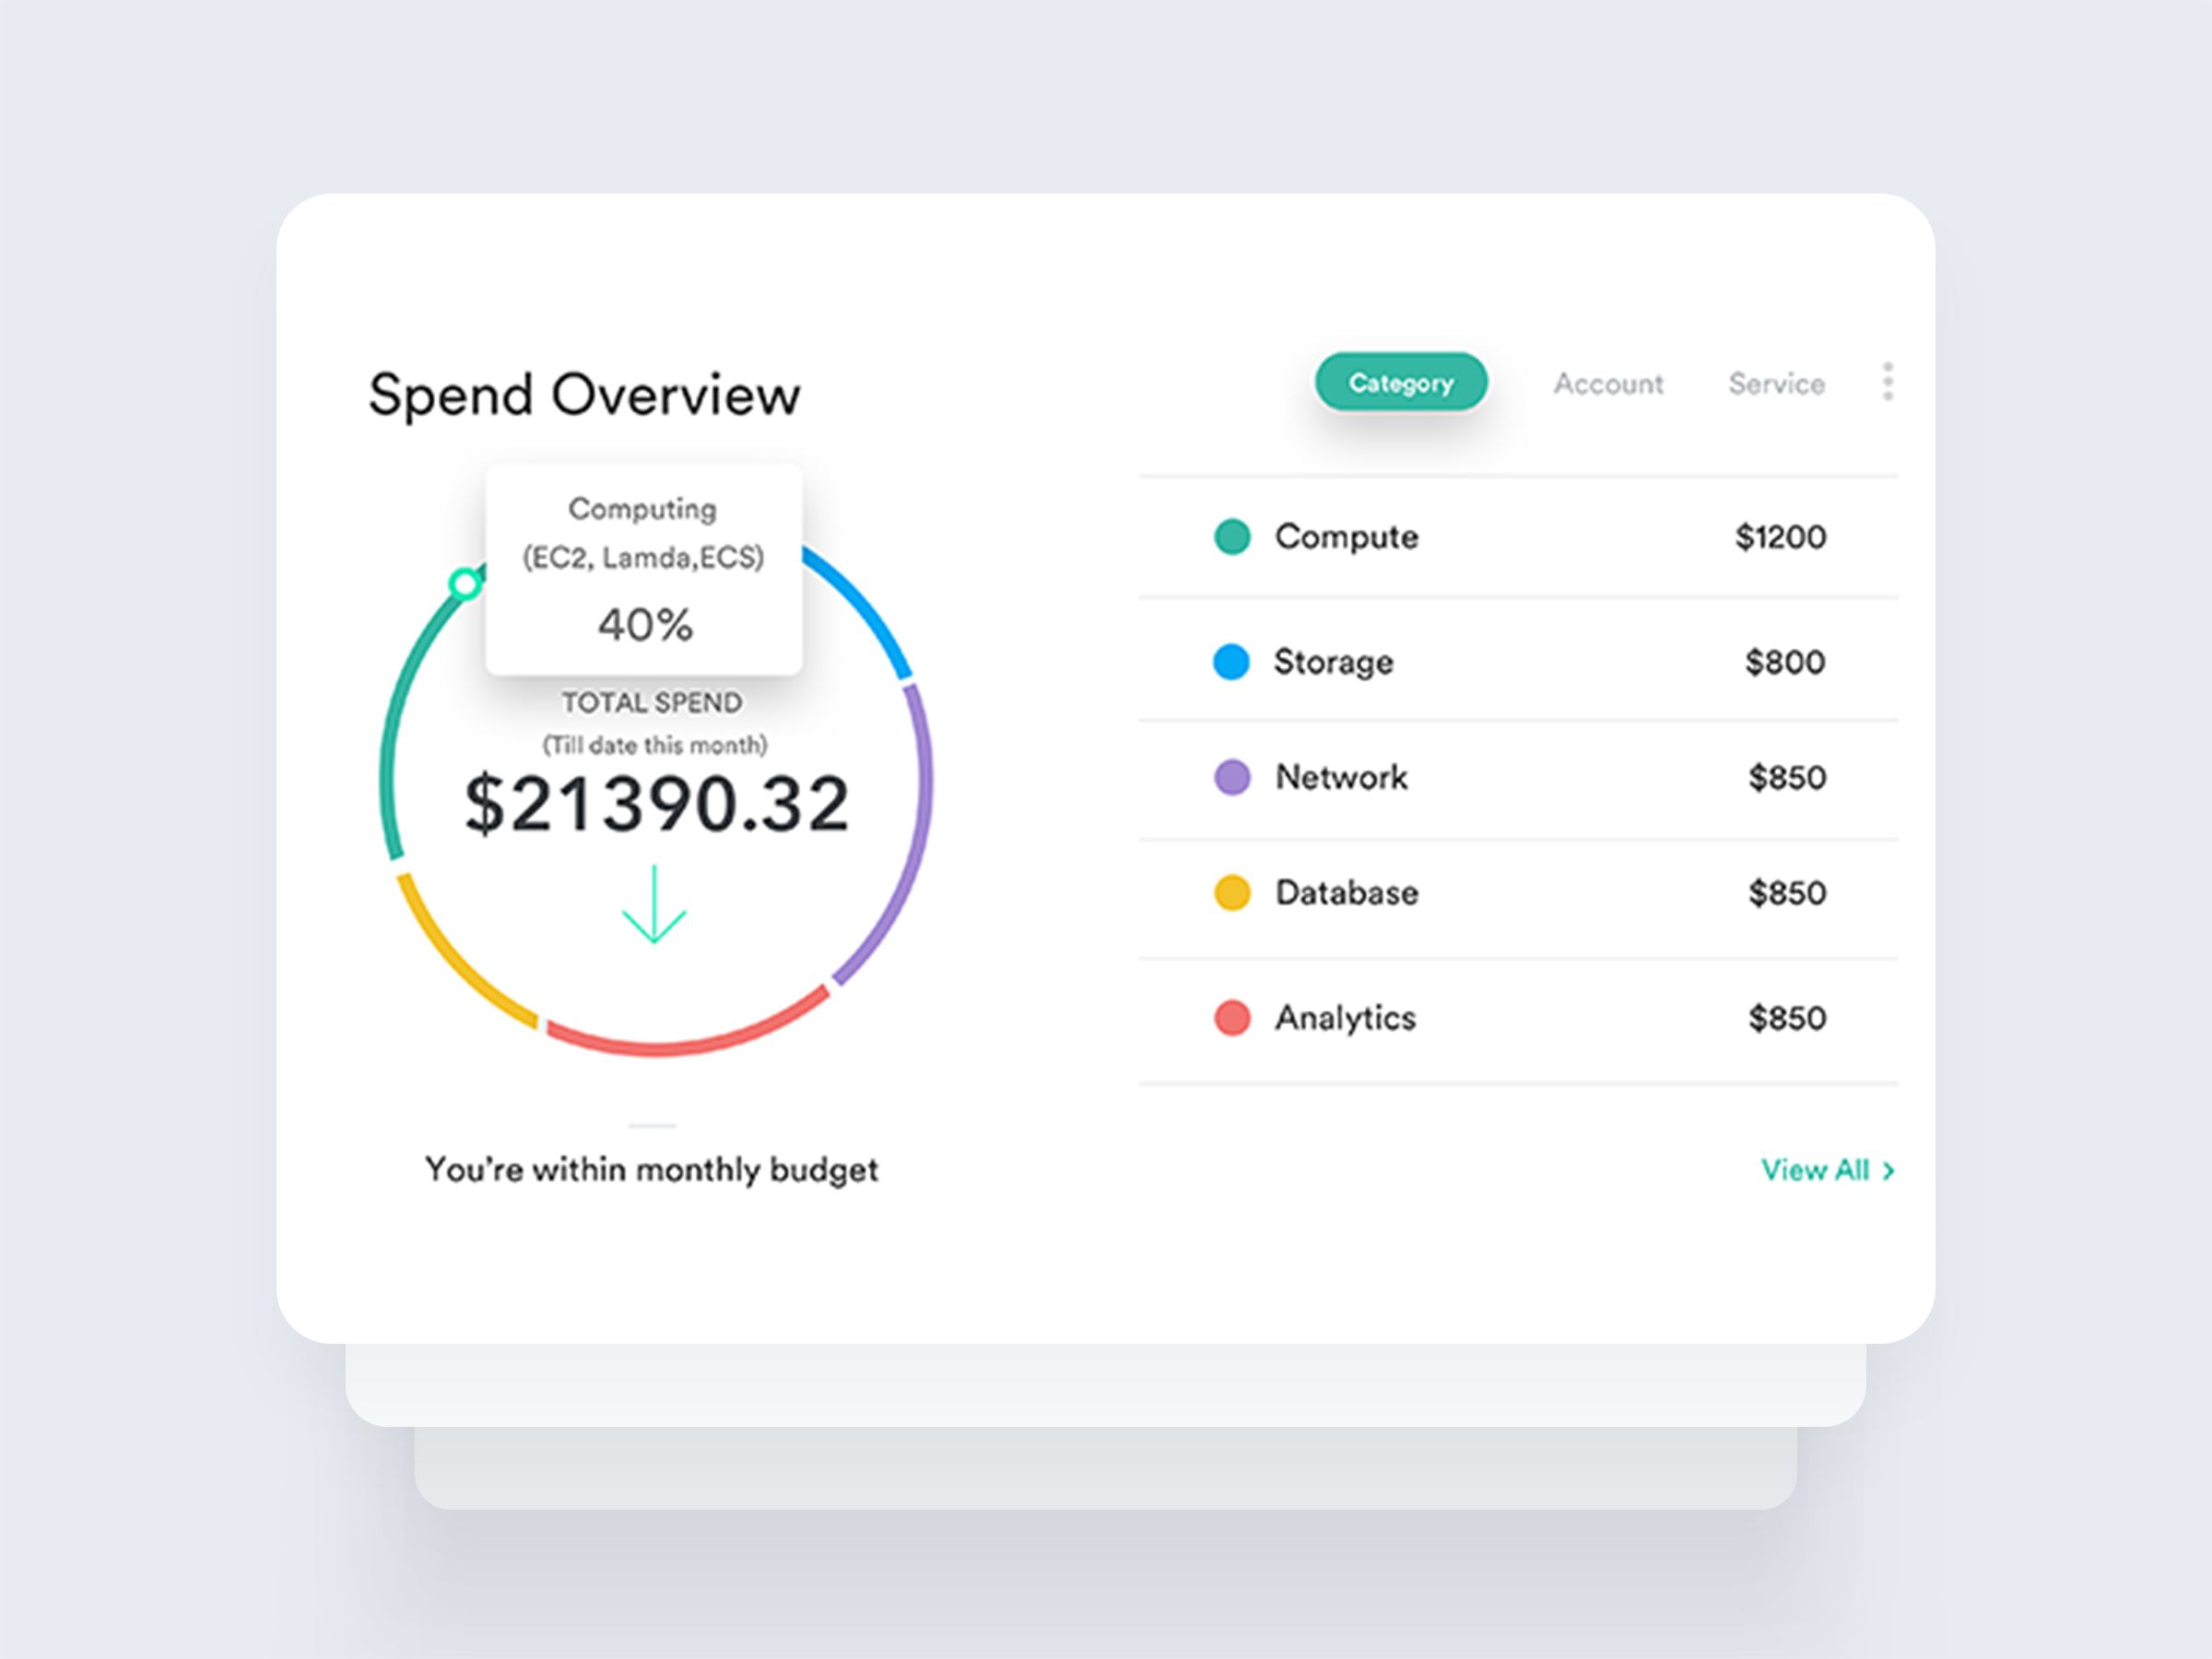 Spend Overview